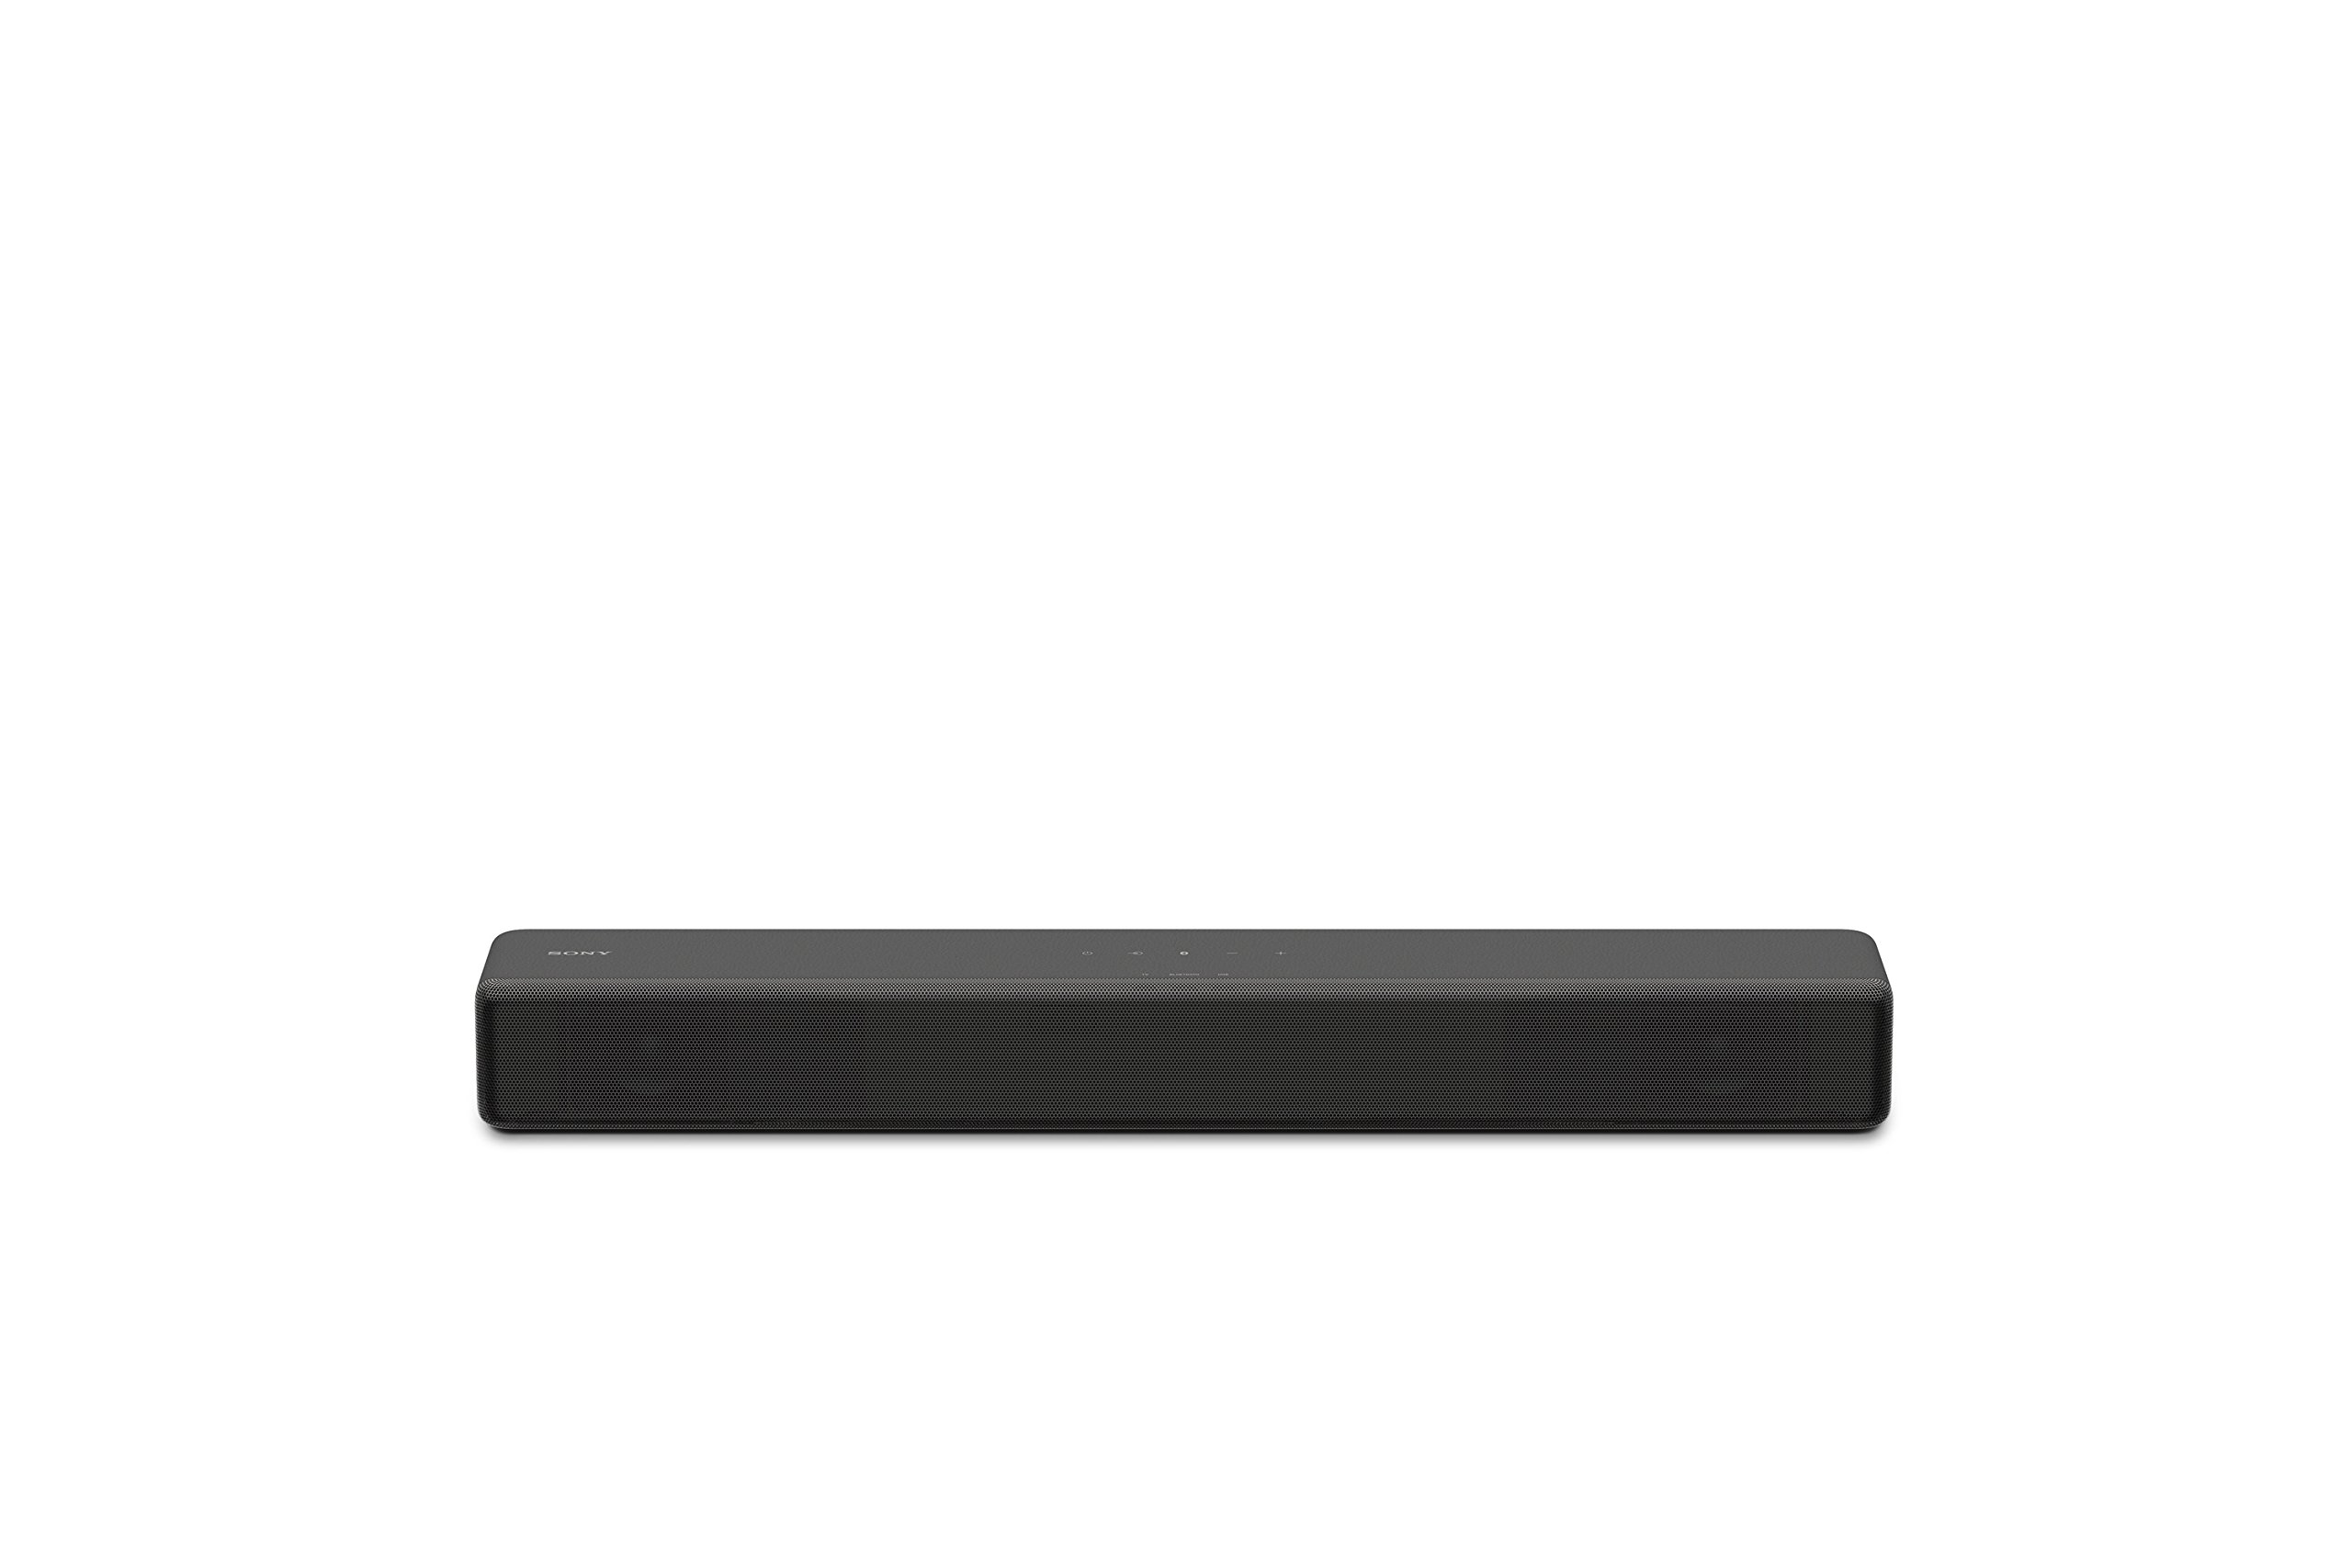 Sony S200F 2.1ch Sound Bar with built-in Subwoofer and Bluetooth, (HT200F) by Sony